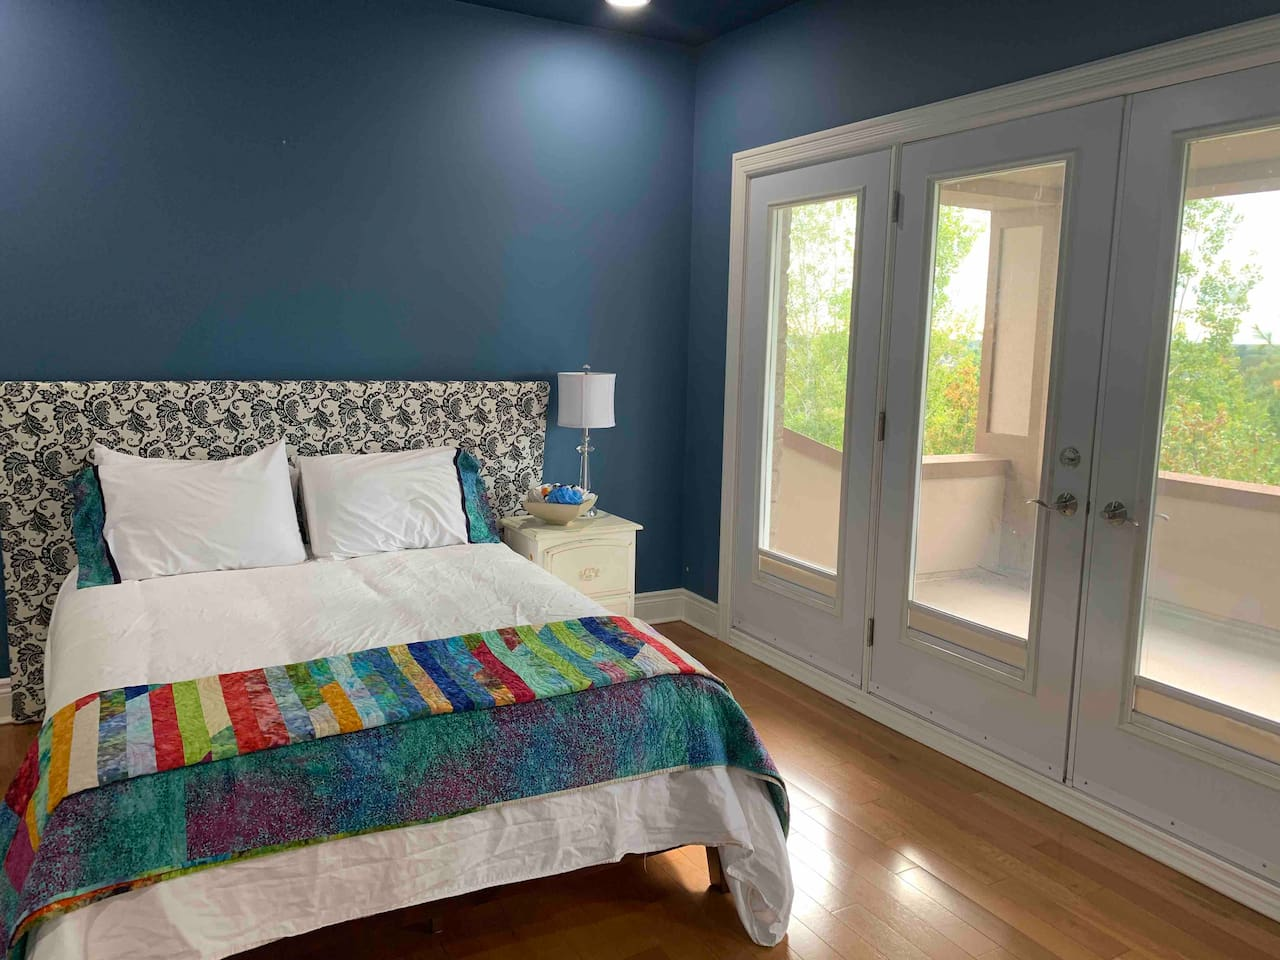 This bedroom has a queen bed and access to terrace that is shared between the two bathrooms.